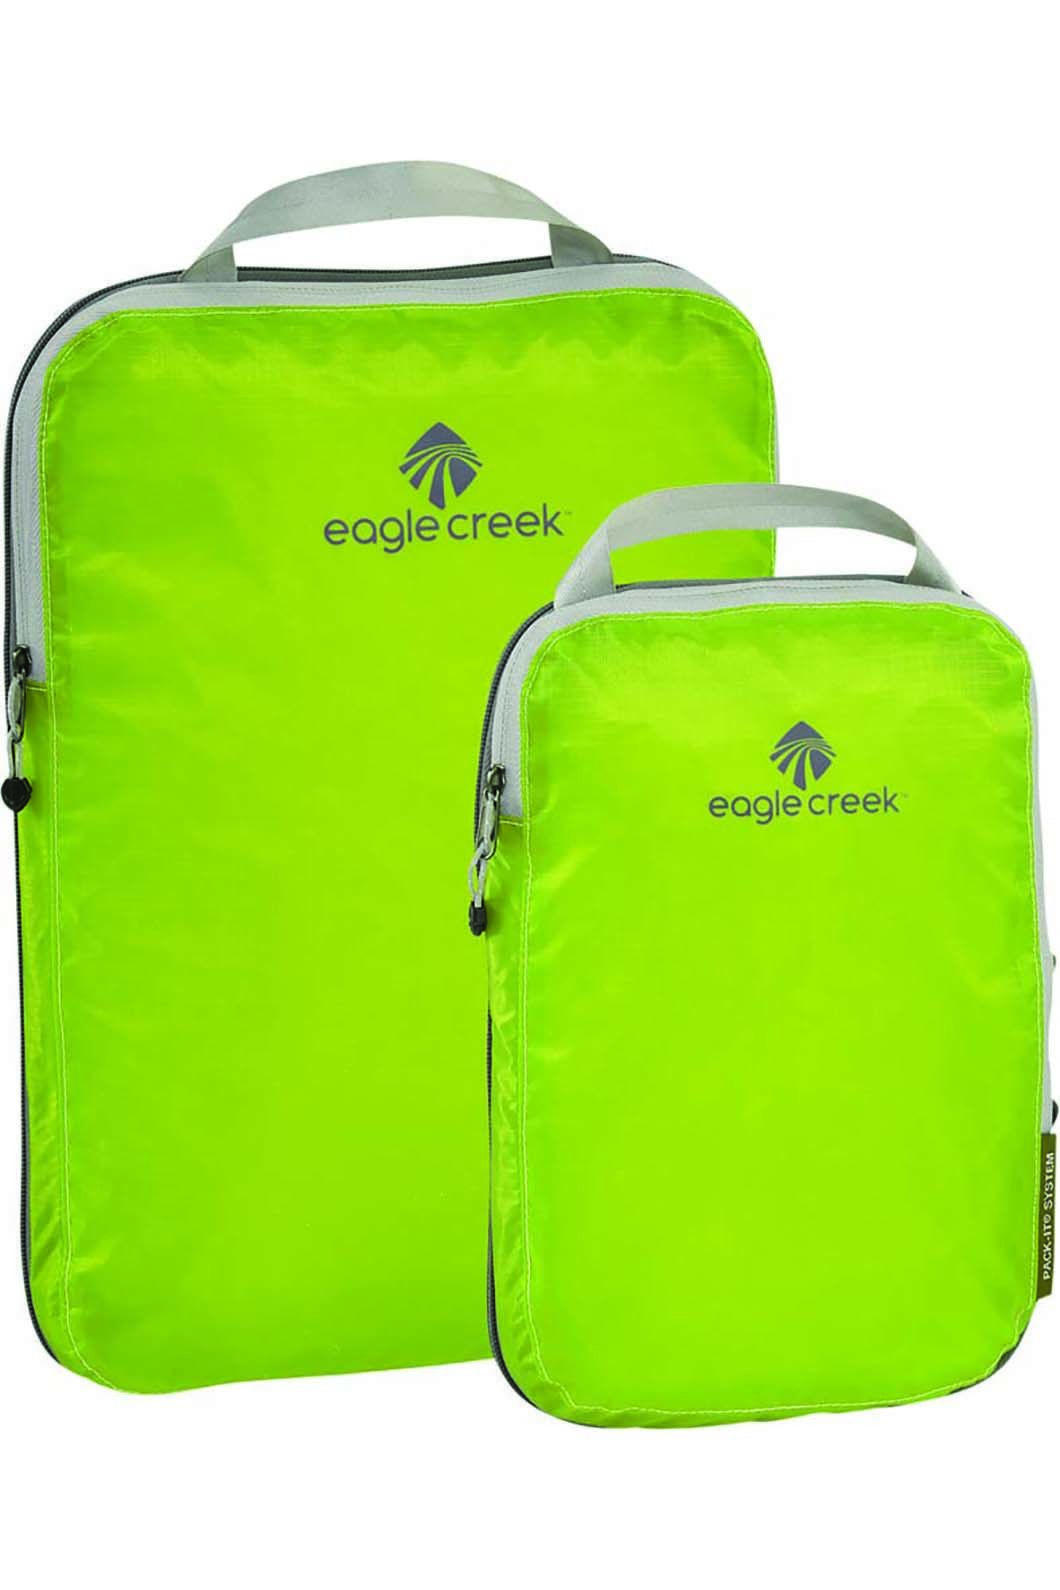 Eagle Creek Pack-It Specter Compression Cube Settrobe, STROBE GREEN, hi-res